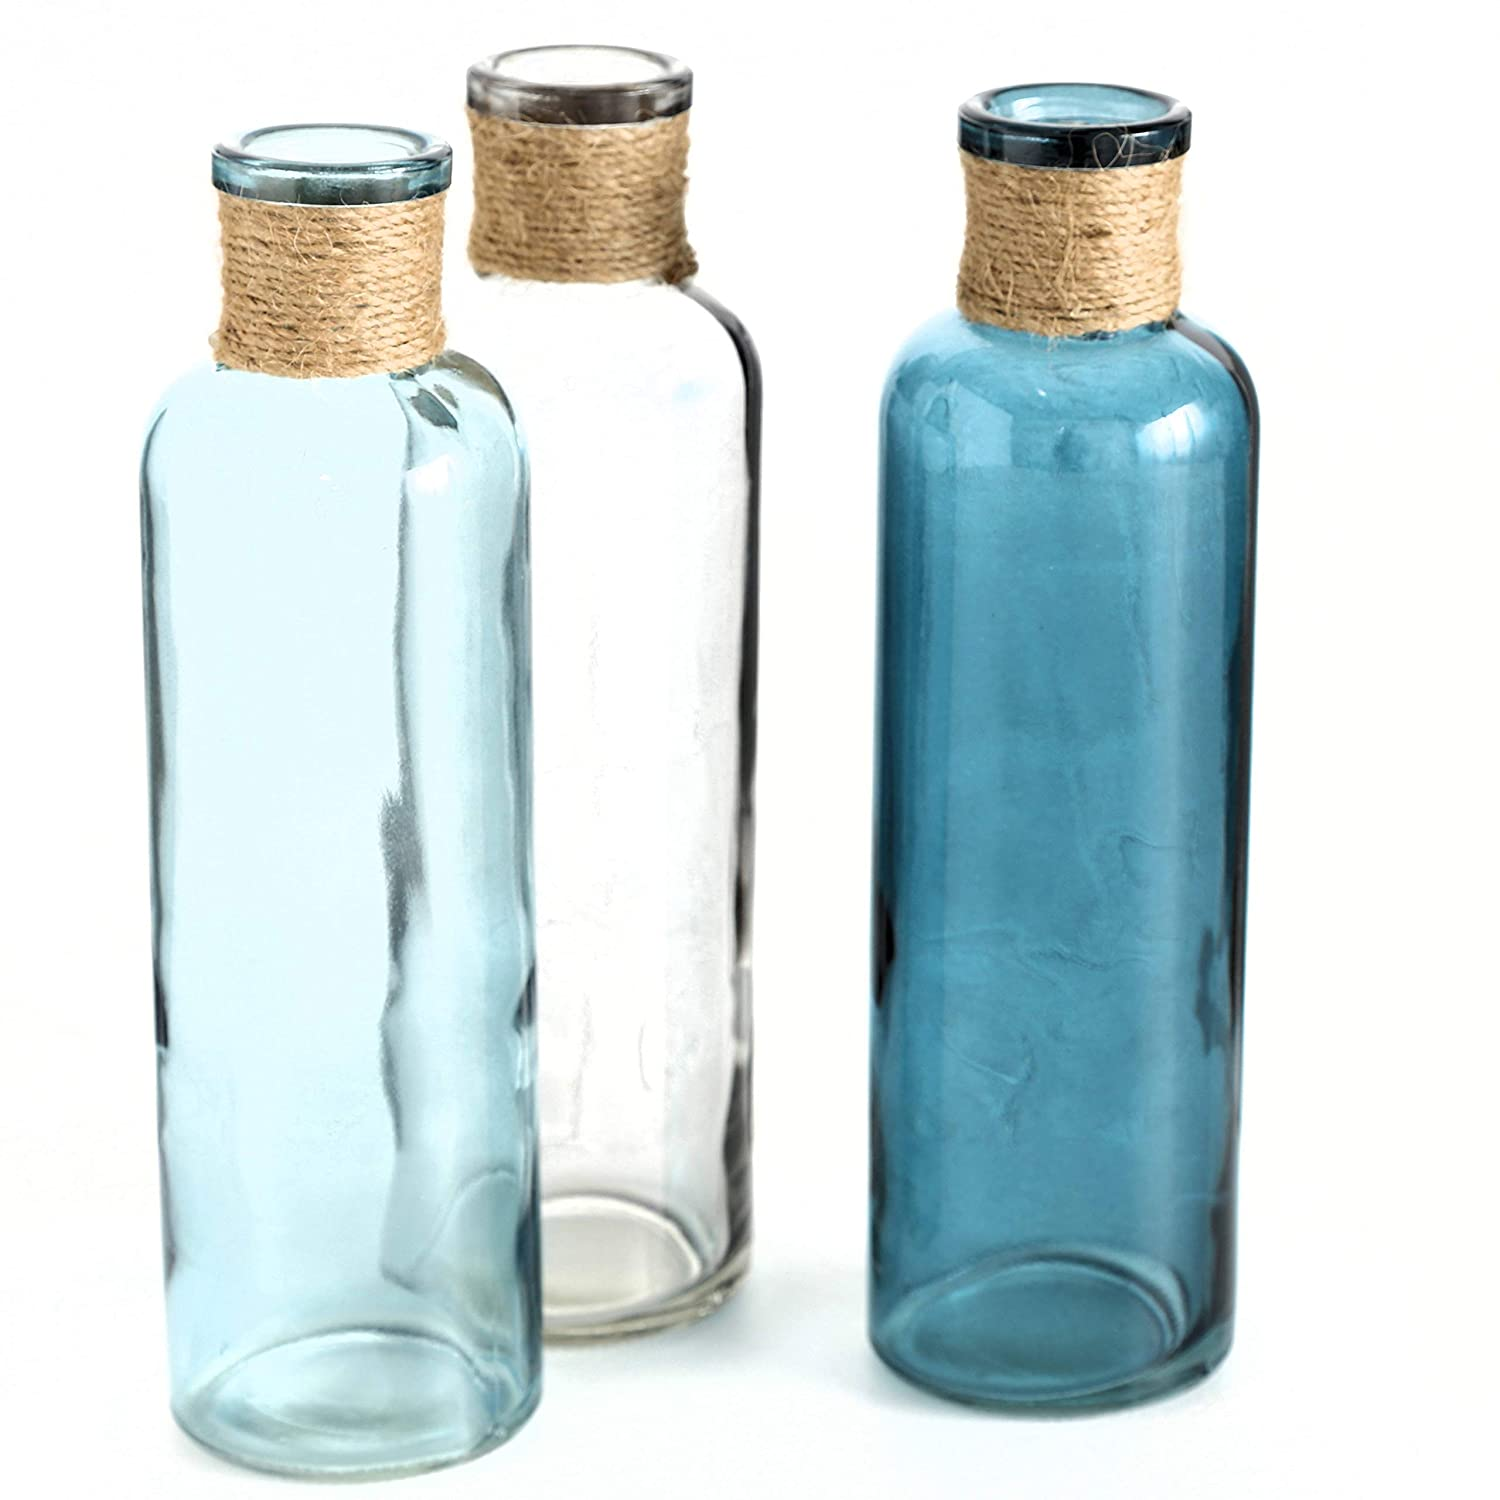 Jute and Lacquered Glass WHW Whole House Worlds Beach Chic Rope Topped Vases Turquoise and Clear Blue Set of 3 8 3//4 Inches Tall